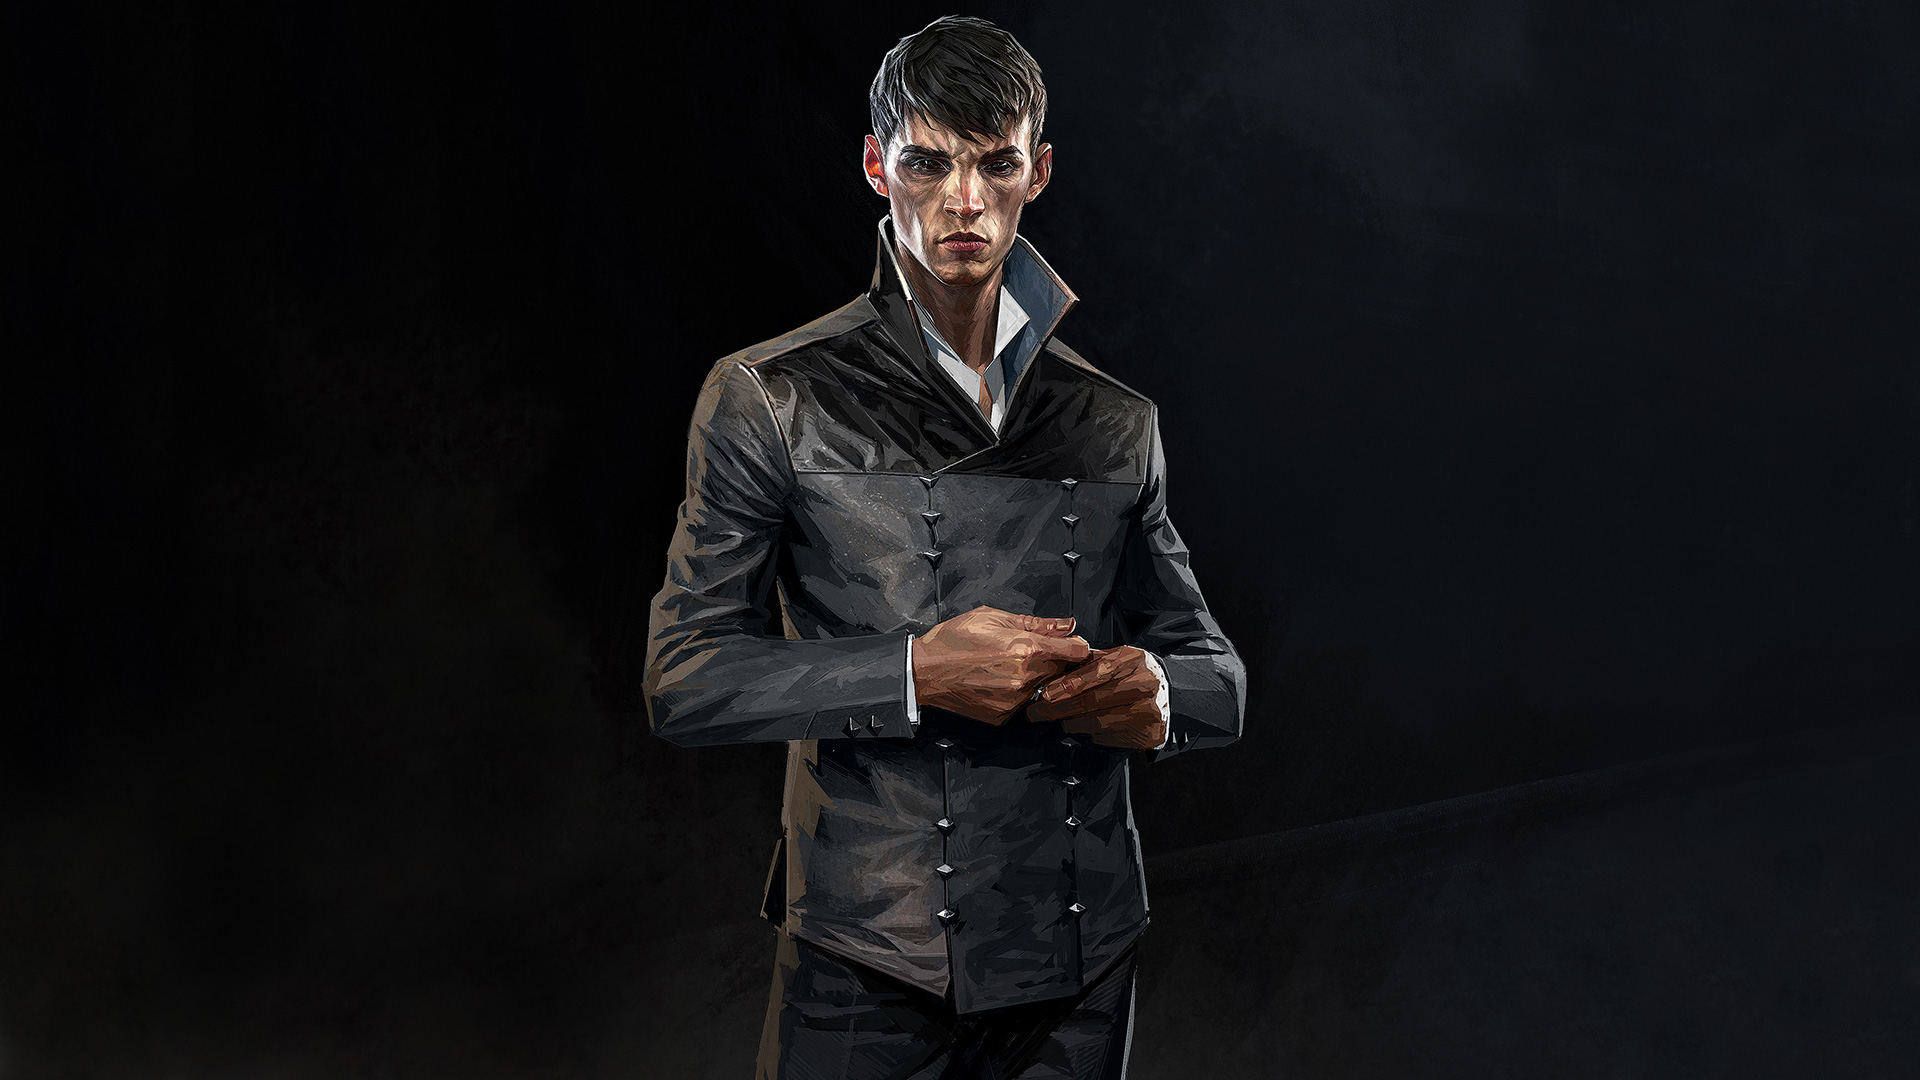 Dishonored 2 Hd Wallpaper Background Image 1920x1080 Id